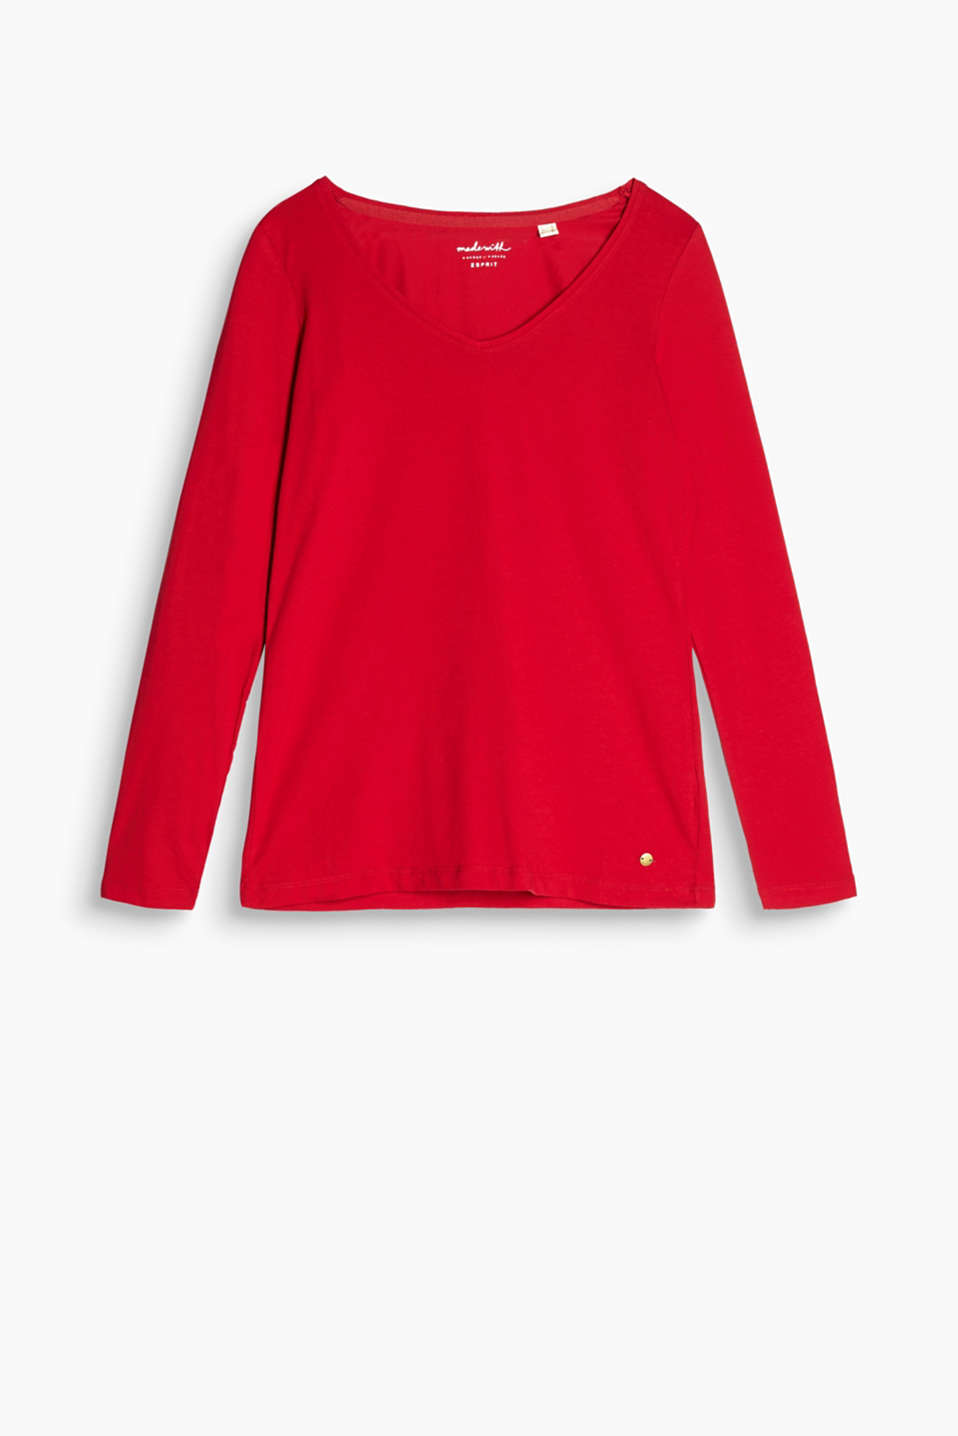 The large V-neckline makes this long sleeve top in soft cotton jersey a flattering feminine piece!